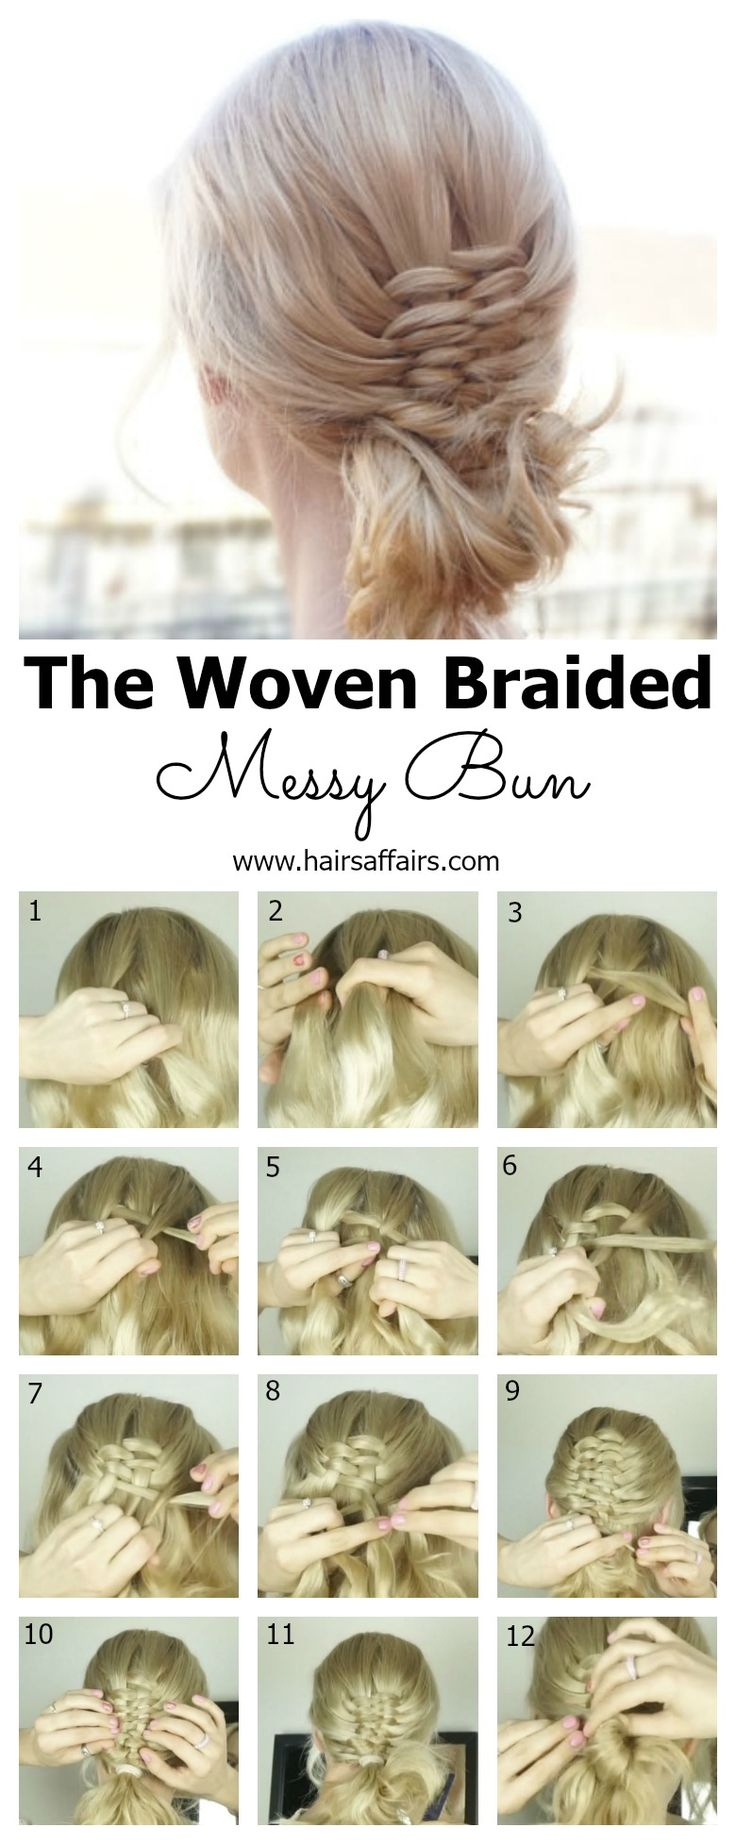 A cute messy bun, with an added accent - The Woven Braided Bun. It's quite easy to recreate! Check out the blog post, video tutorial included:  https://hairsaffairs.com/woven-braided-bun-tutorial/